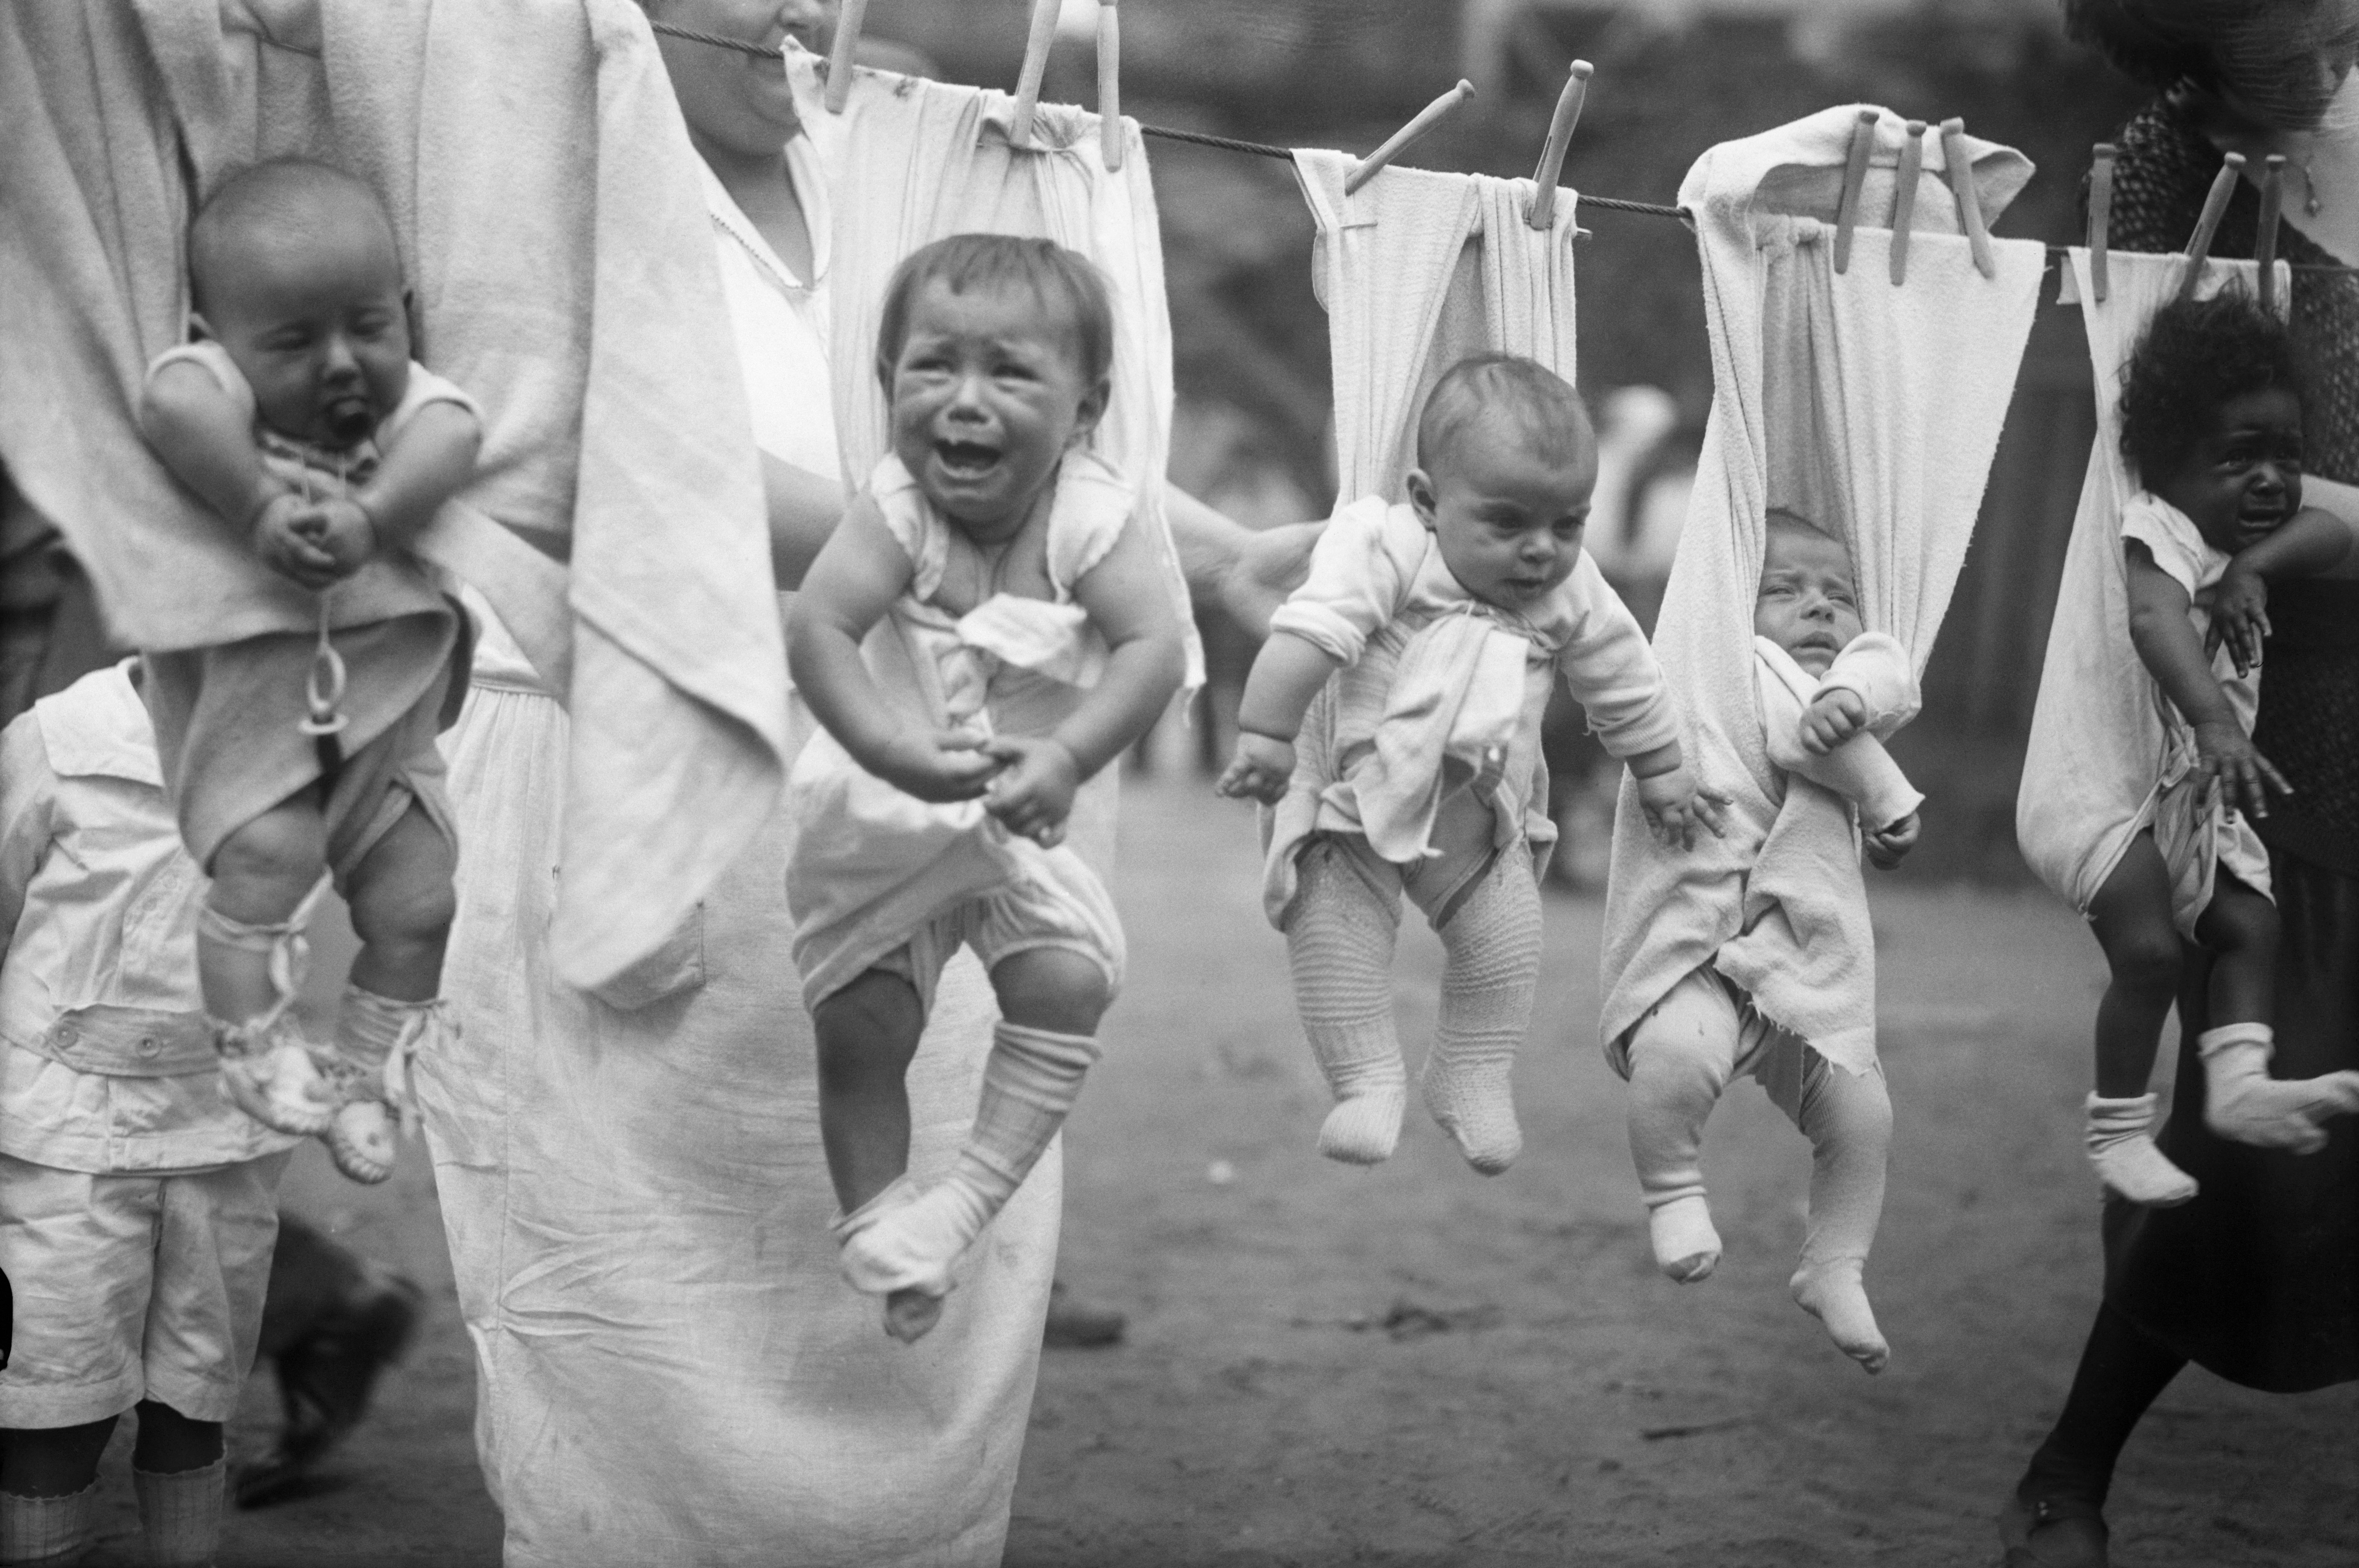 Babies hanging with laundry on washing line